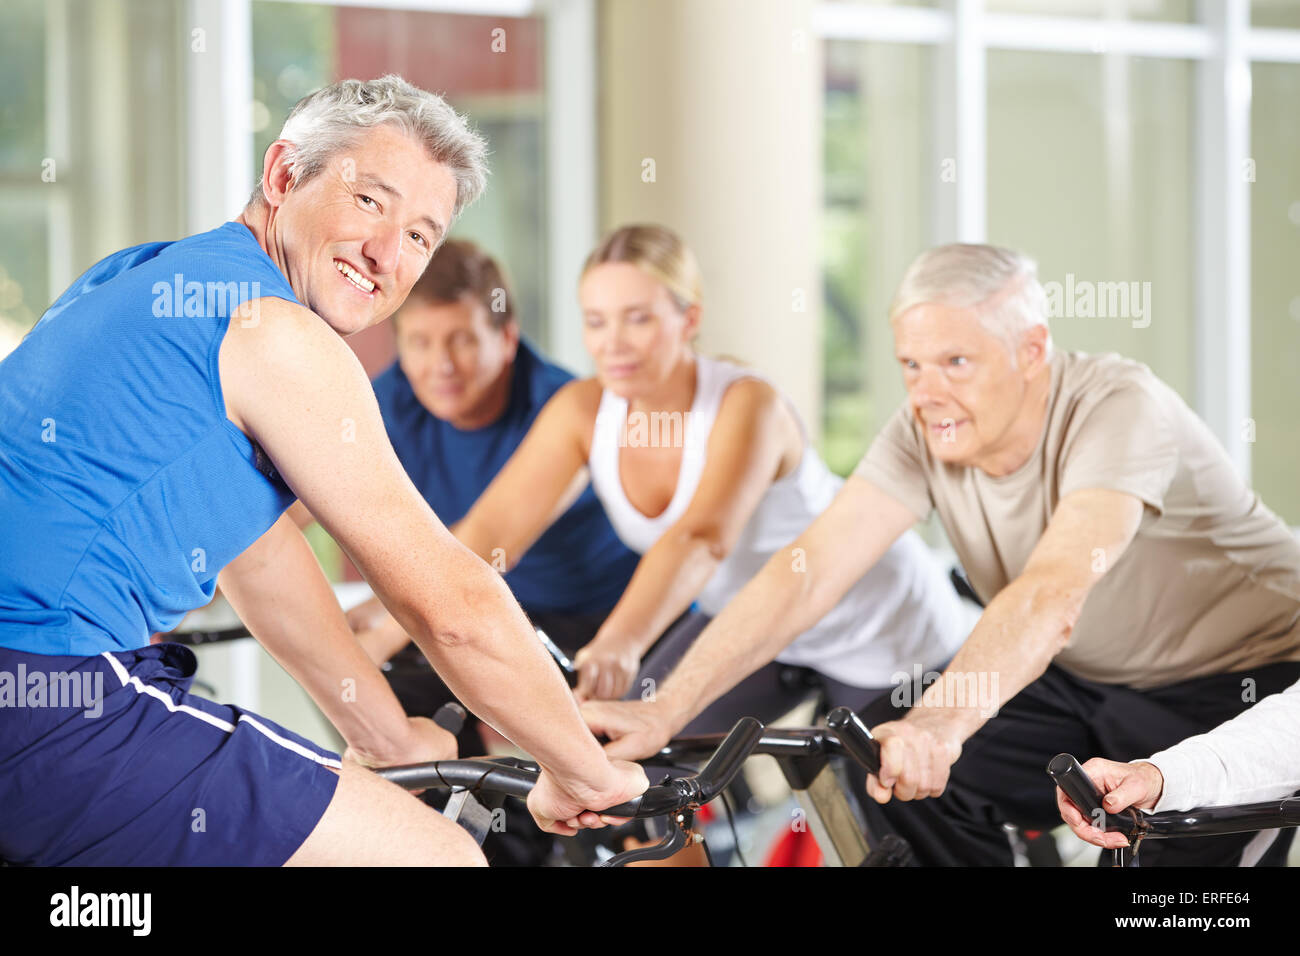 Happy fitness trainer con senior group sulla moto di filatura in palestra Immagini Stock